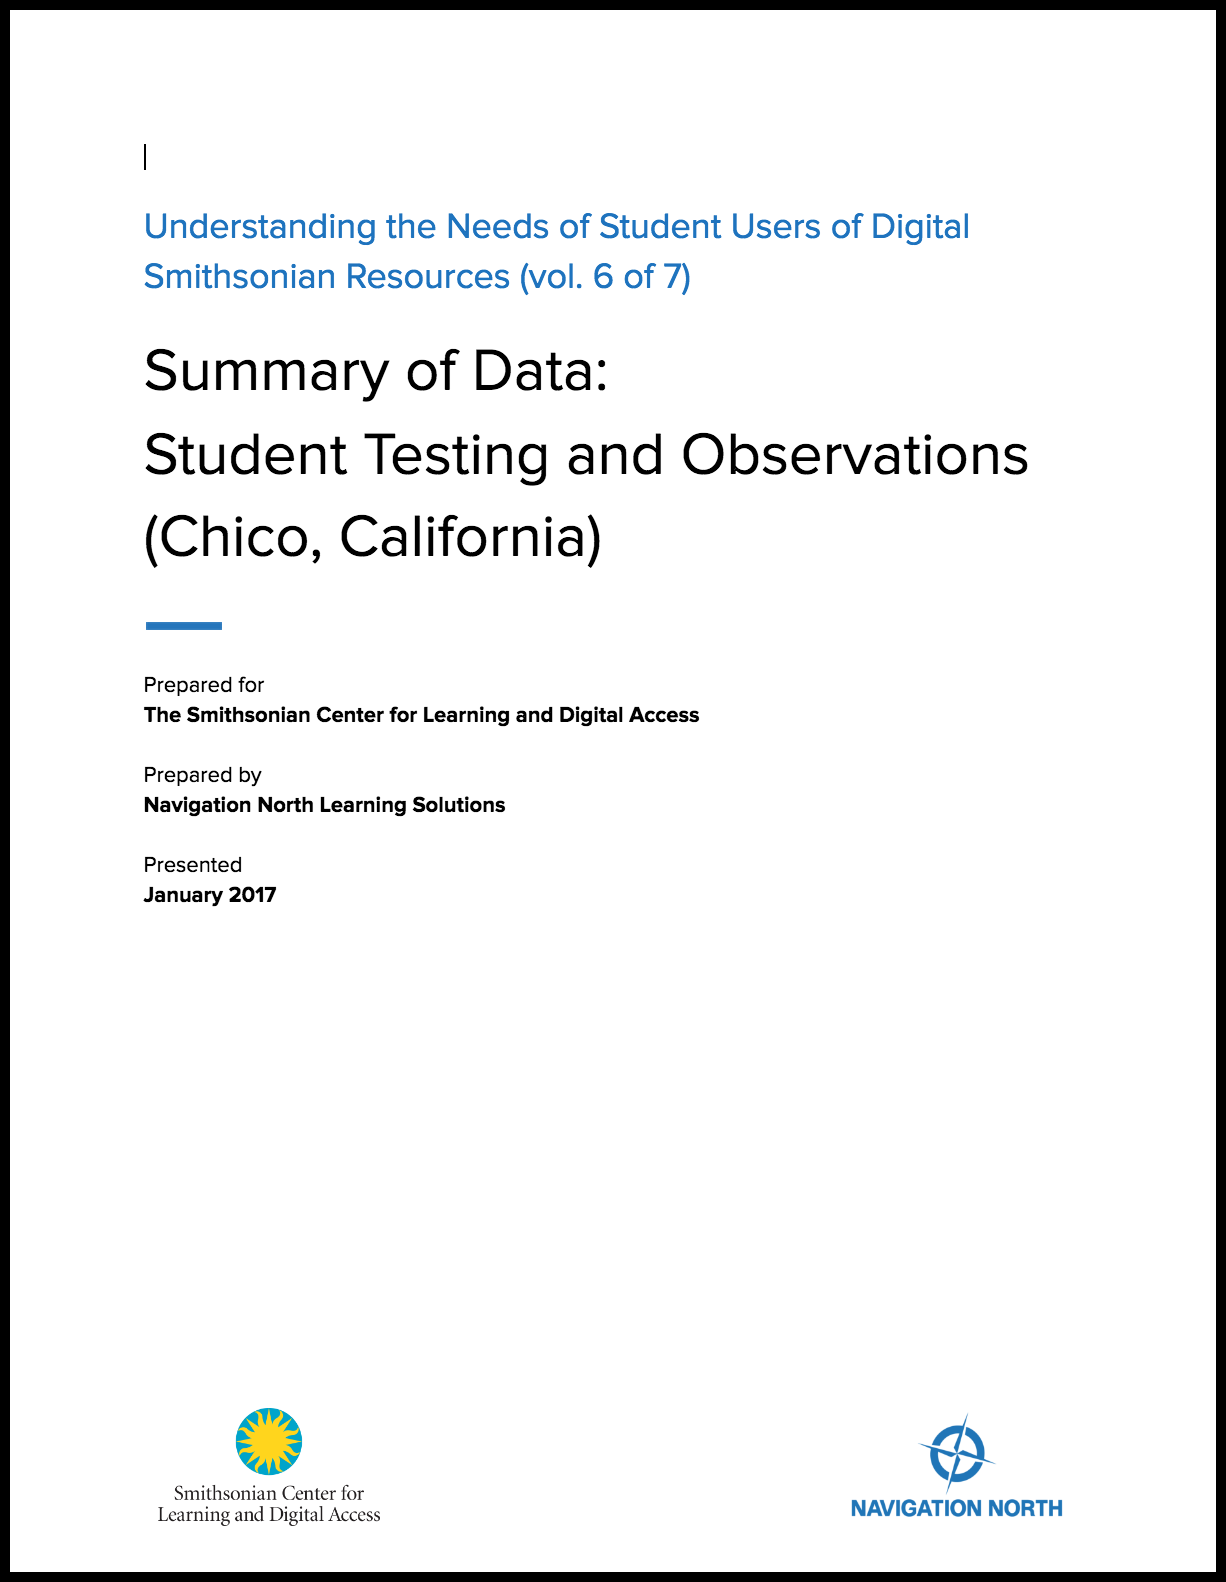 Summary of Data: Student Testing and Observations Chico, California